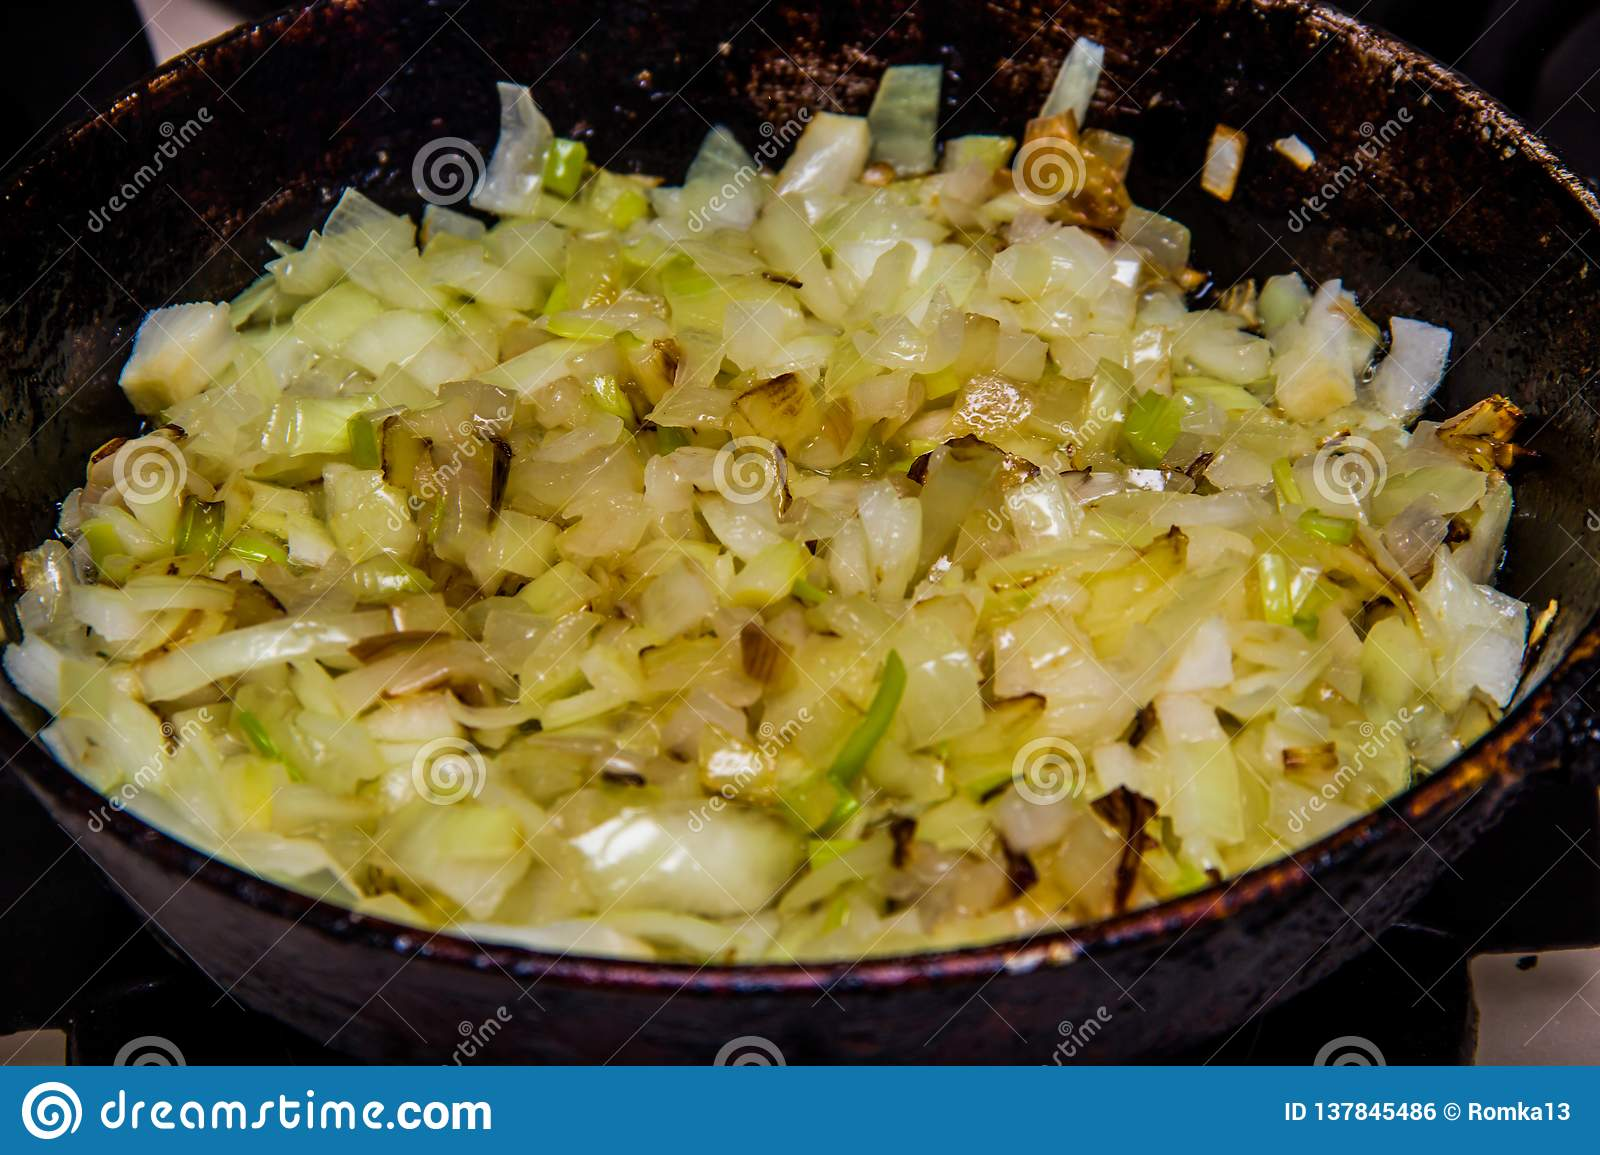 Brown onions fried in a pan